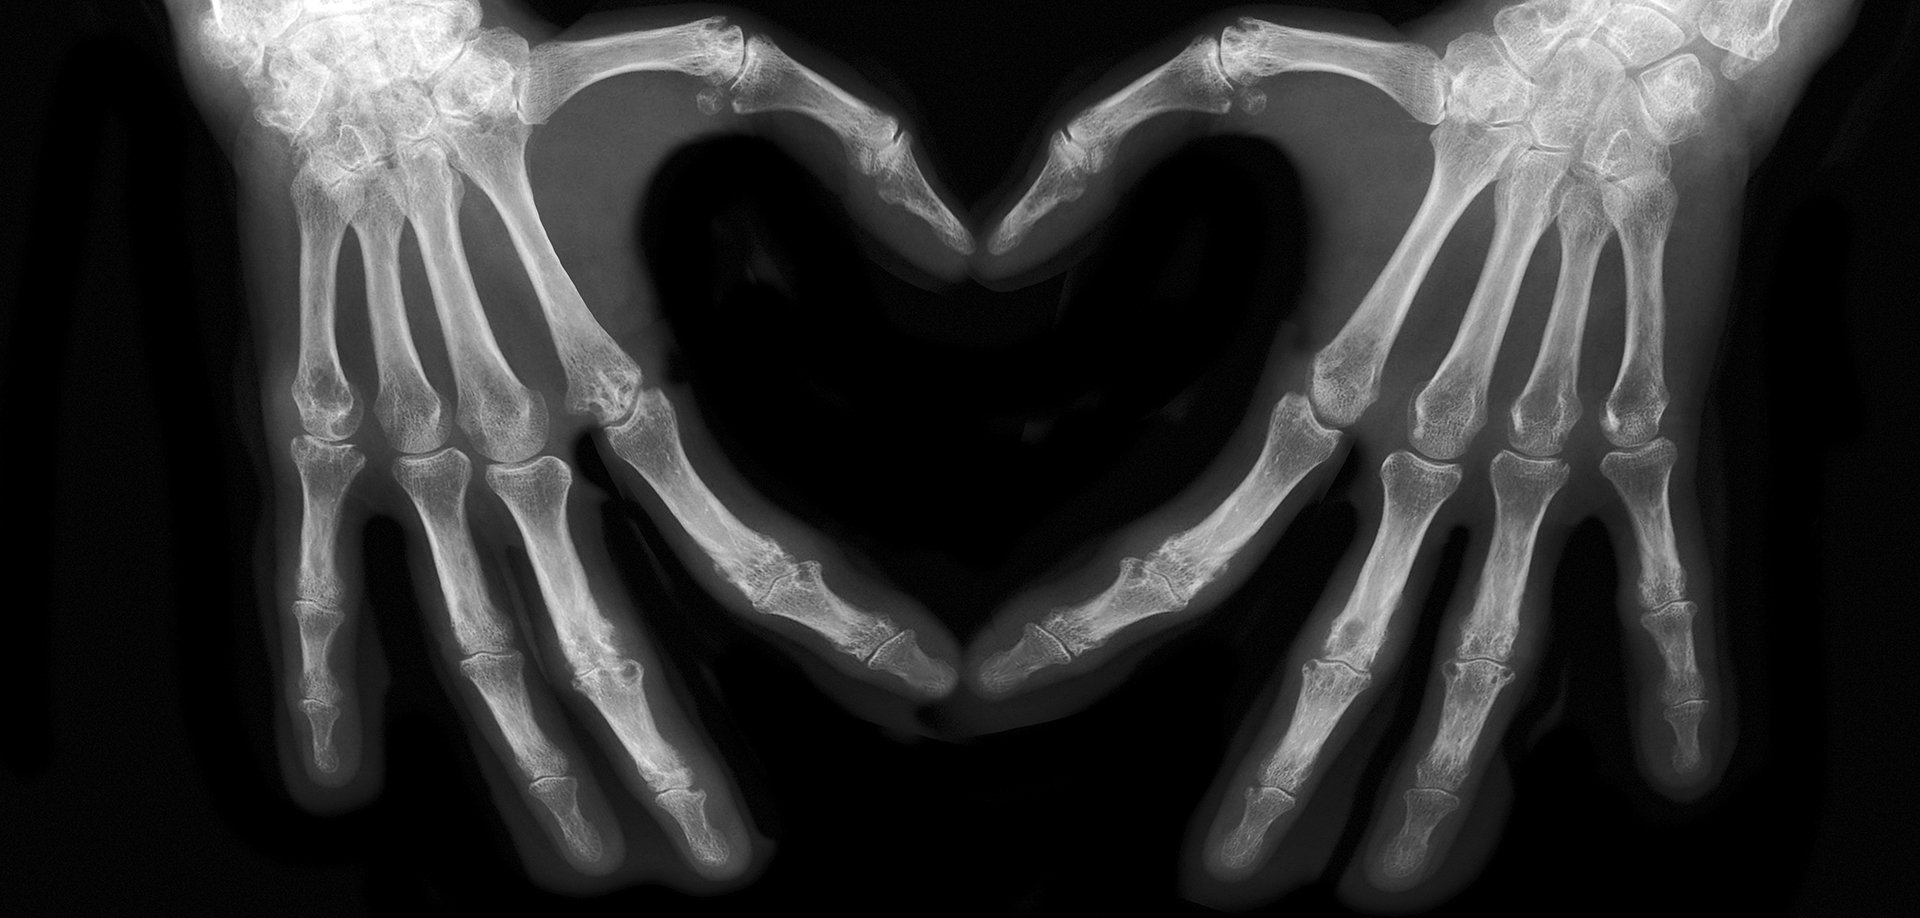 hands on an x-ray